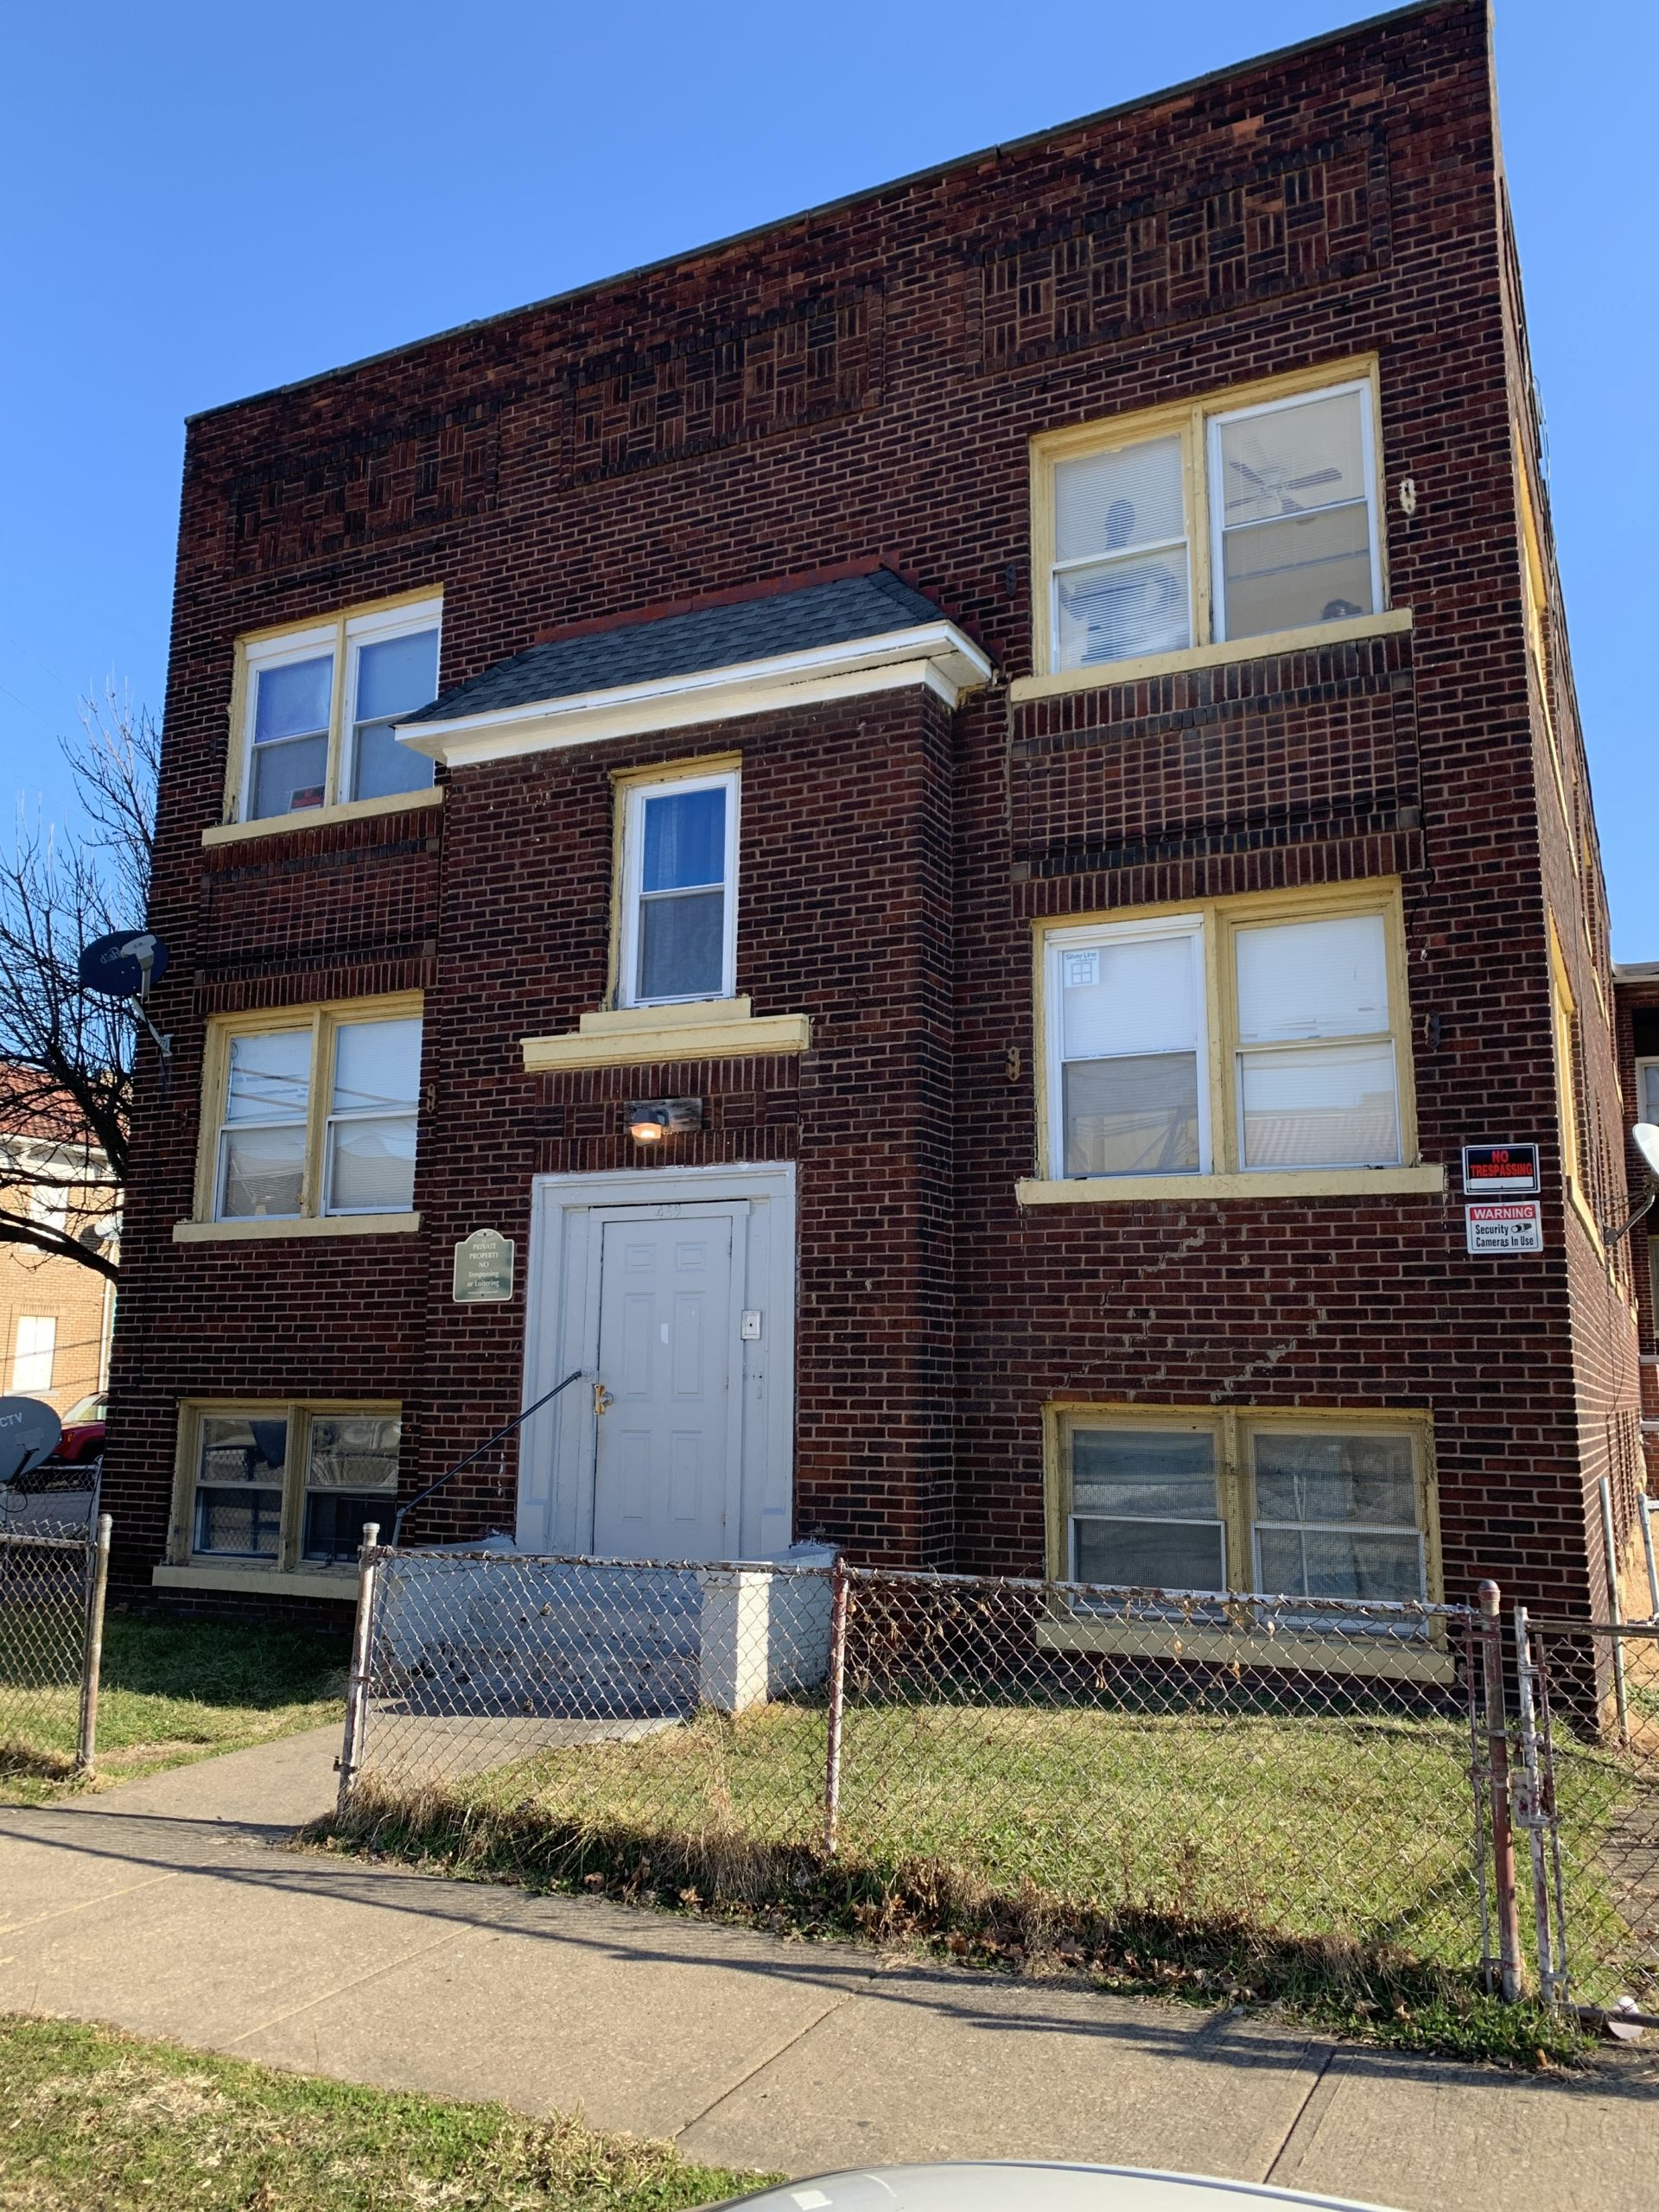 459 East 117th Street, OH 44108 – Unit7